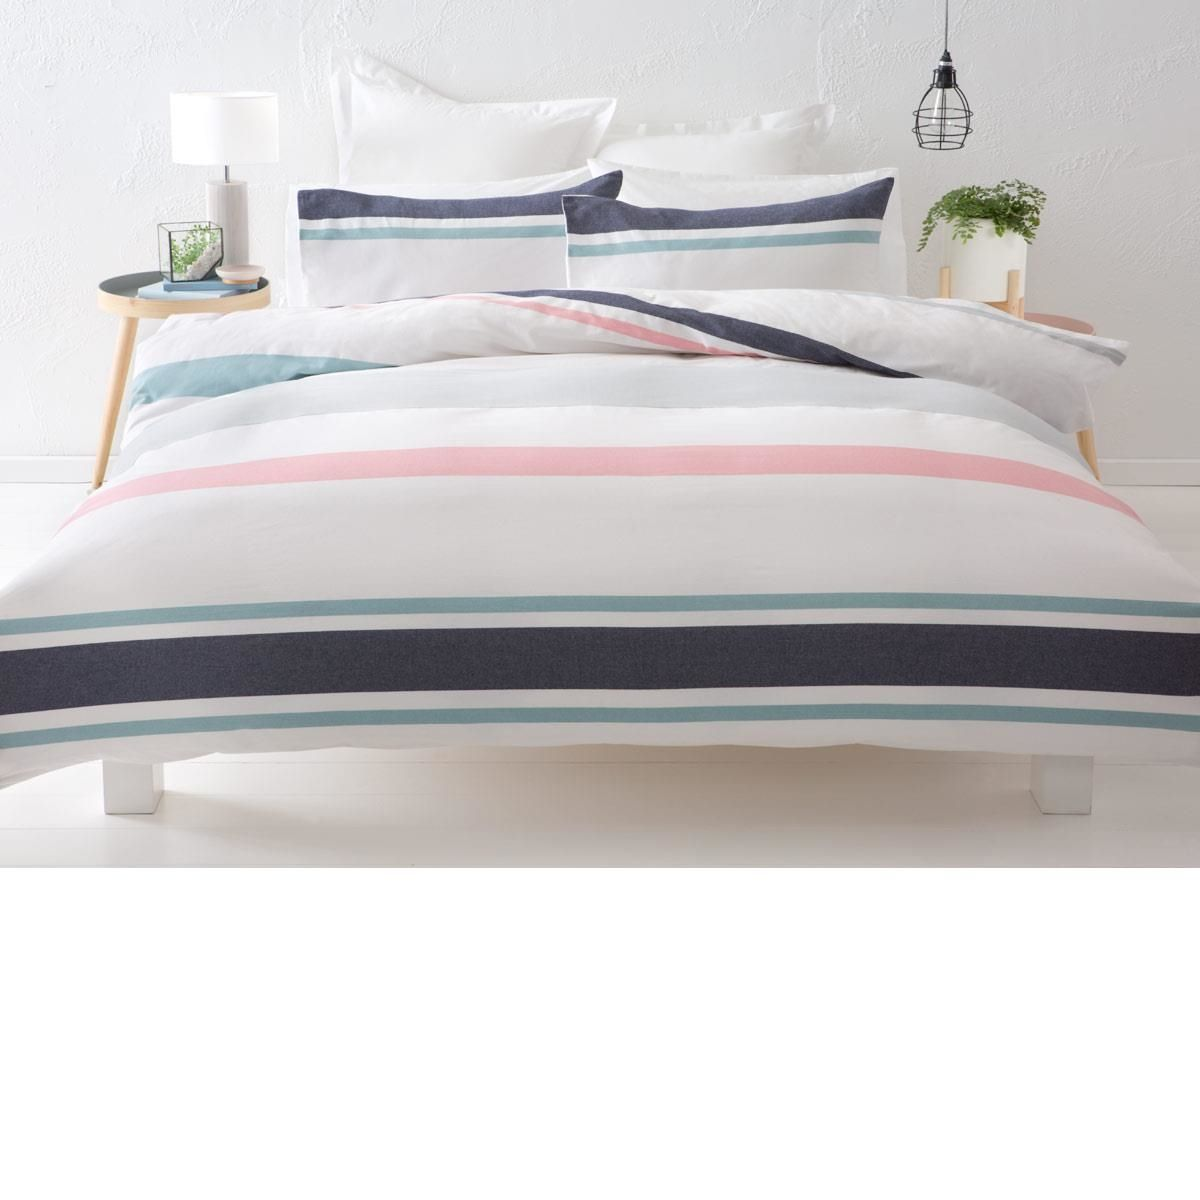 Nelson Quilt Cover Set - Double Bed | Kmart | Daughter's Bedroom ... : kmart quilts - Adamdwight.com